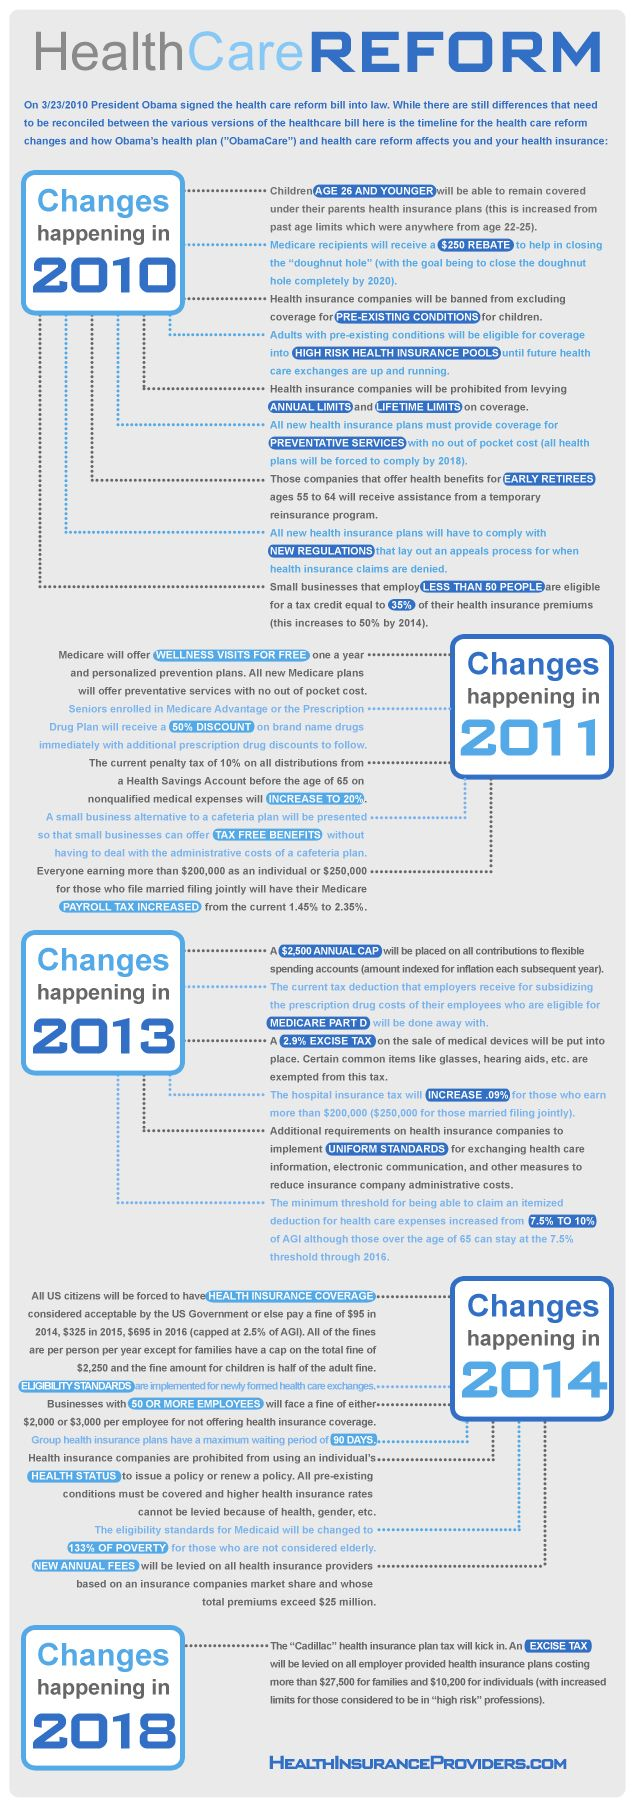 Healthcare reform changes are happening, with more on the way! Here's a basic graphical timeline.